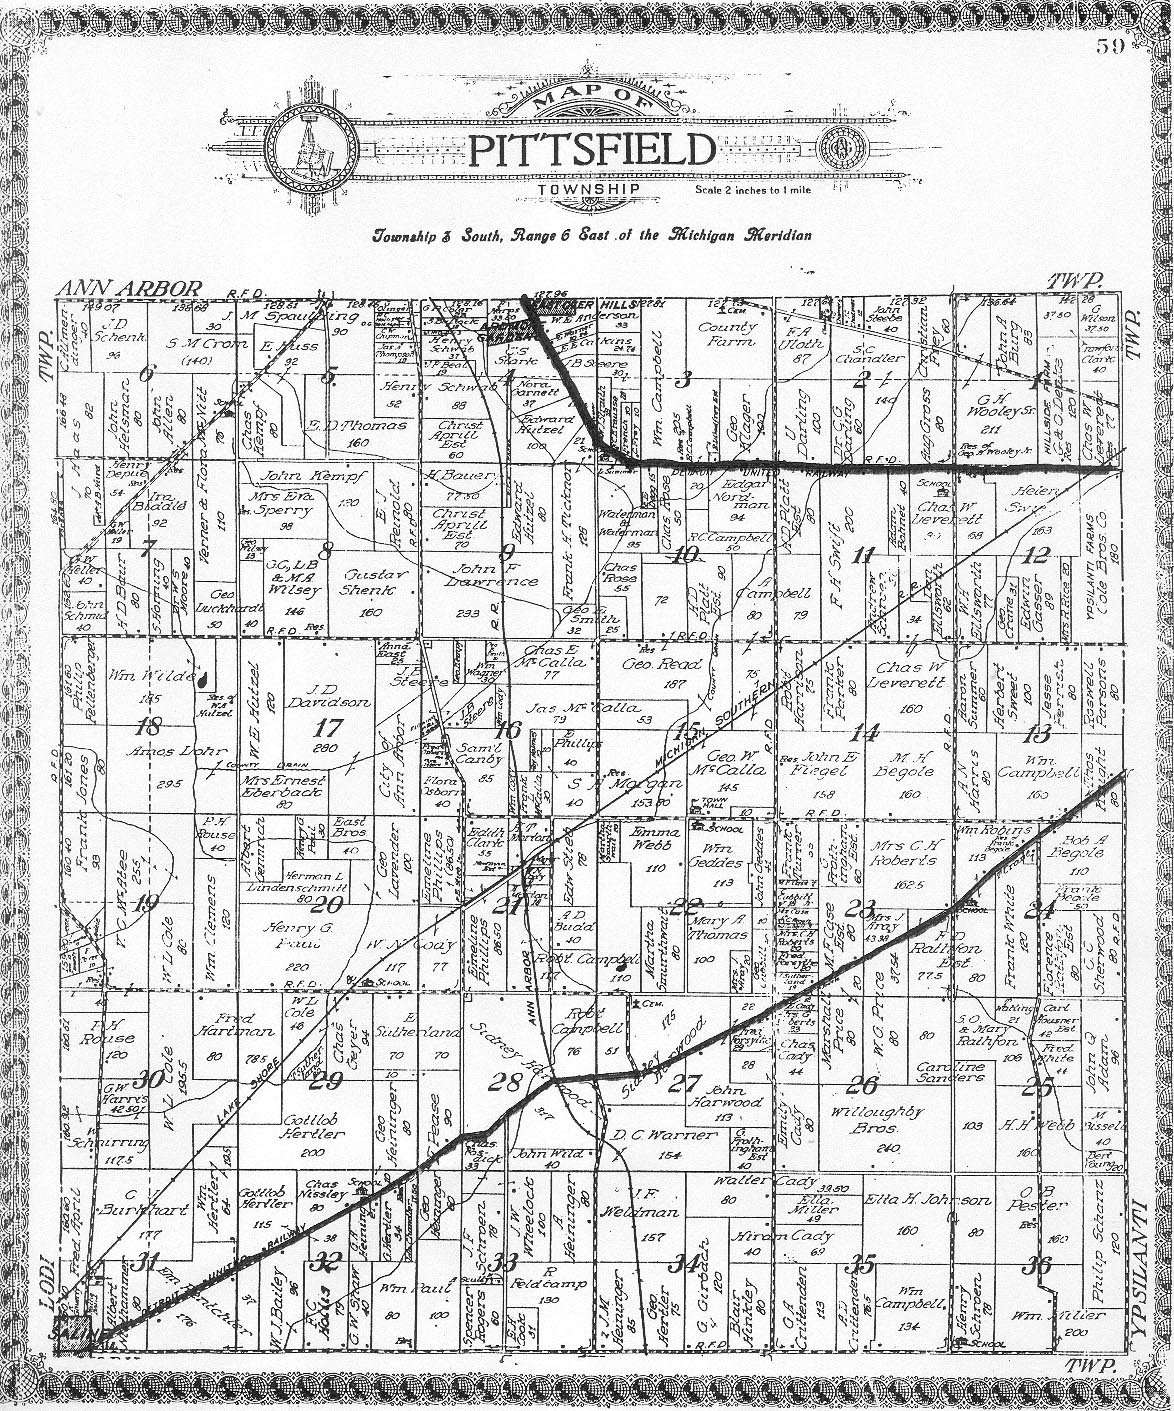 map . pittsfield township historical society  plat maps of pittsfield